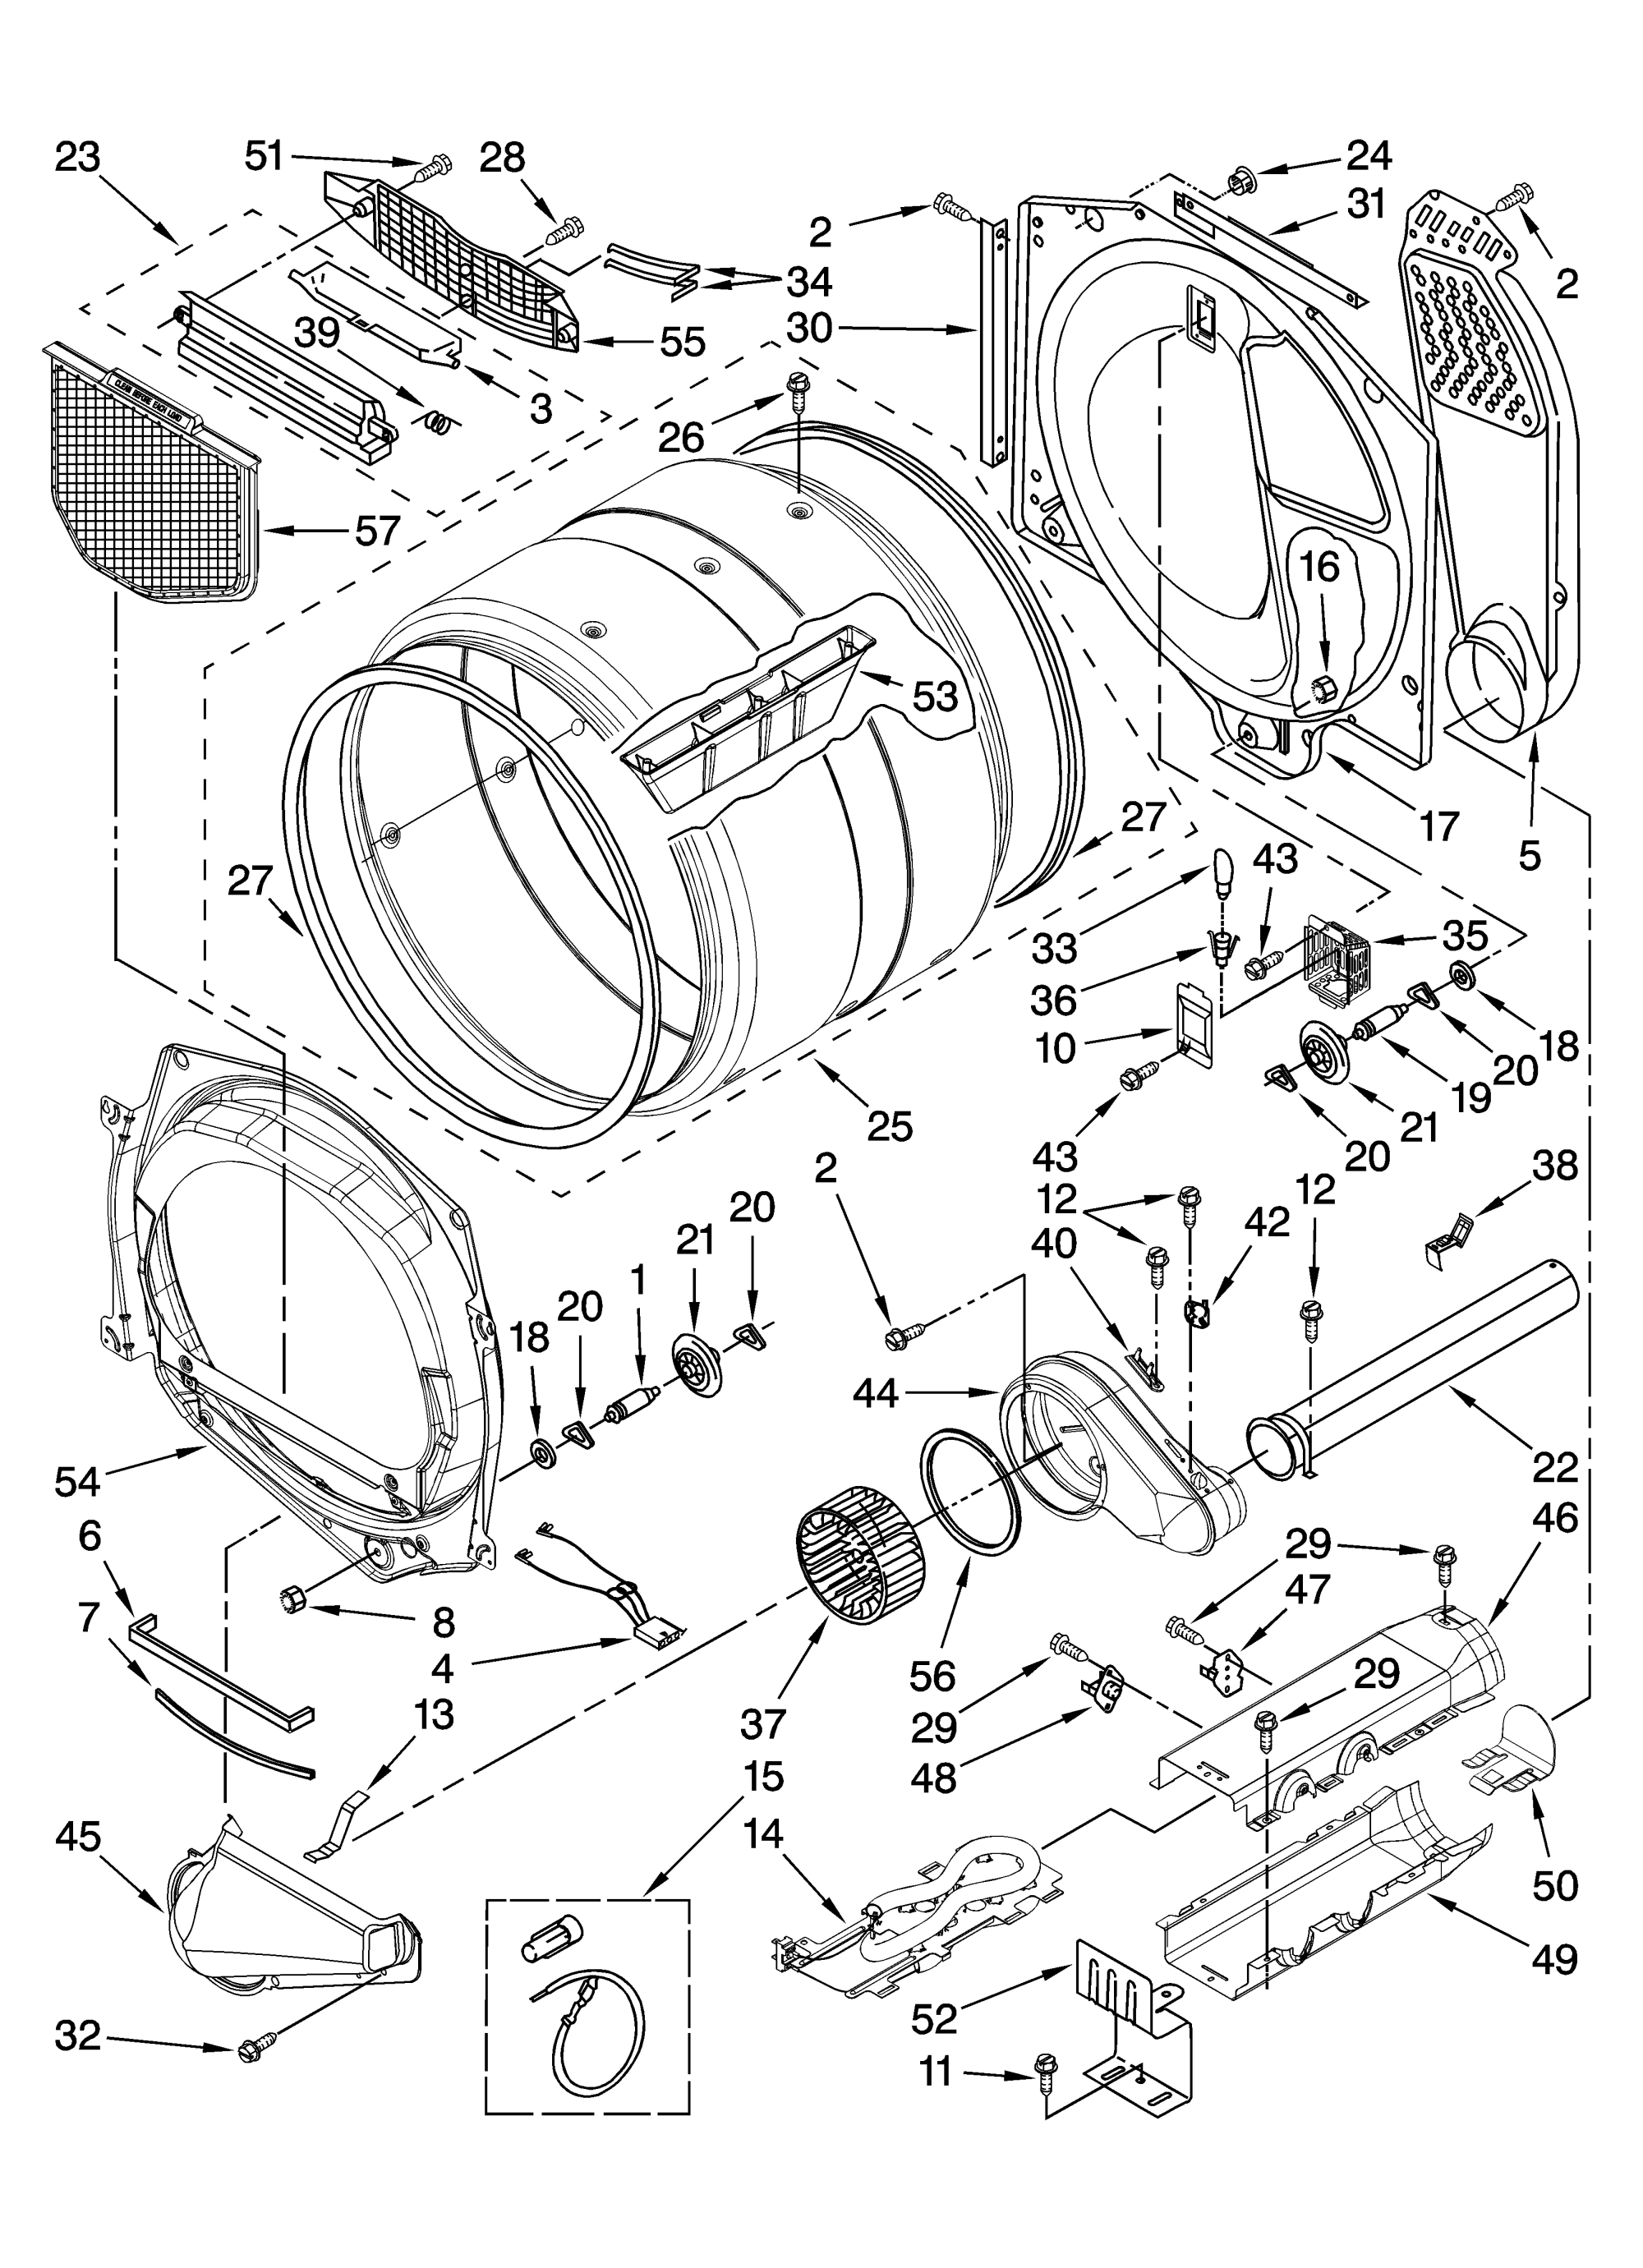 hight resolution of whirlpool duet sport washer wiring diagram diagrams kenmore model 11087562602 residential dryer genuine parts